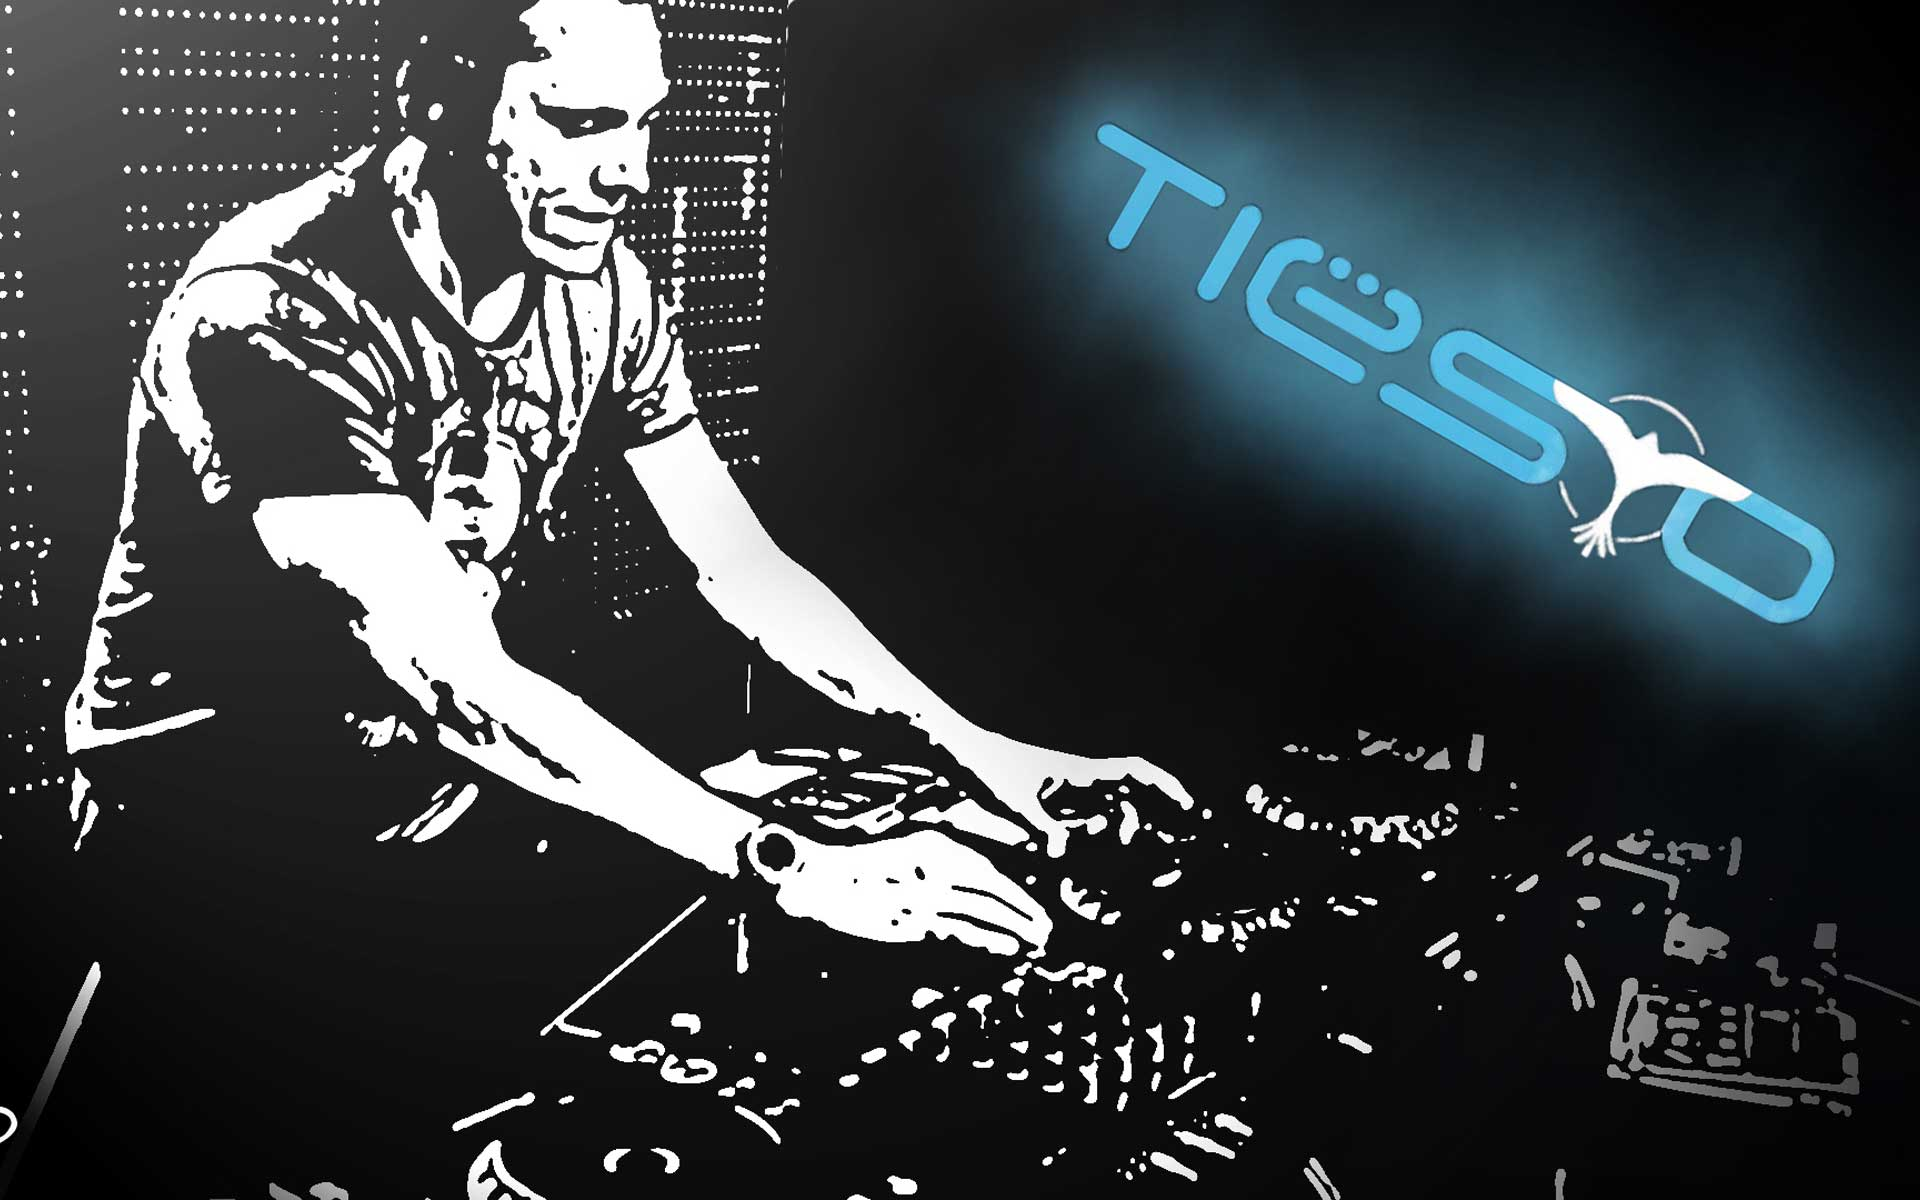 Dj Tiesto Wallpapers